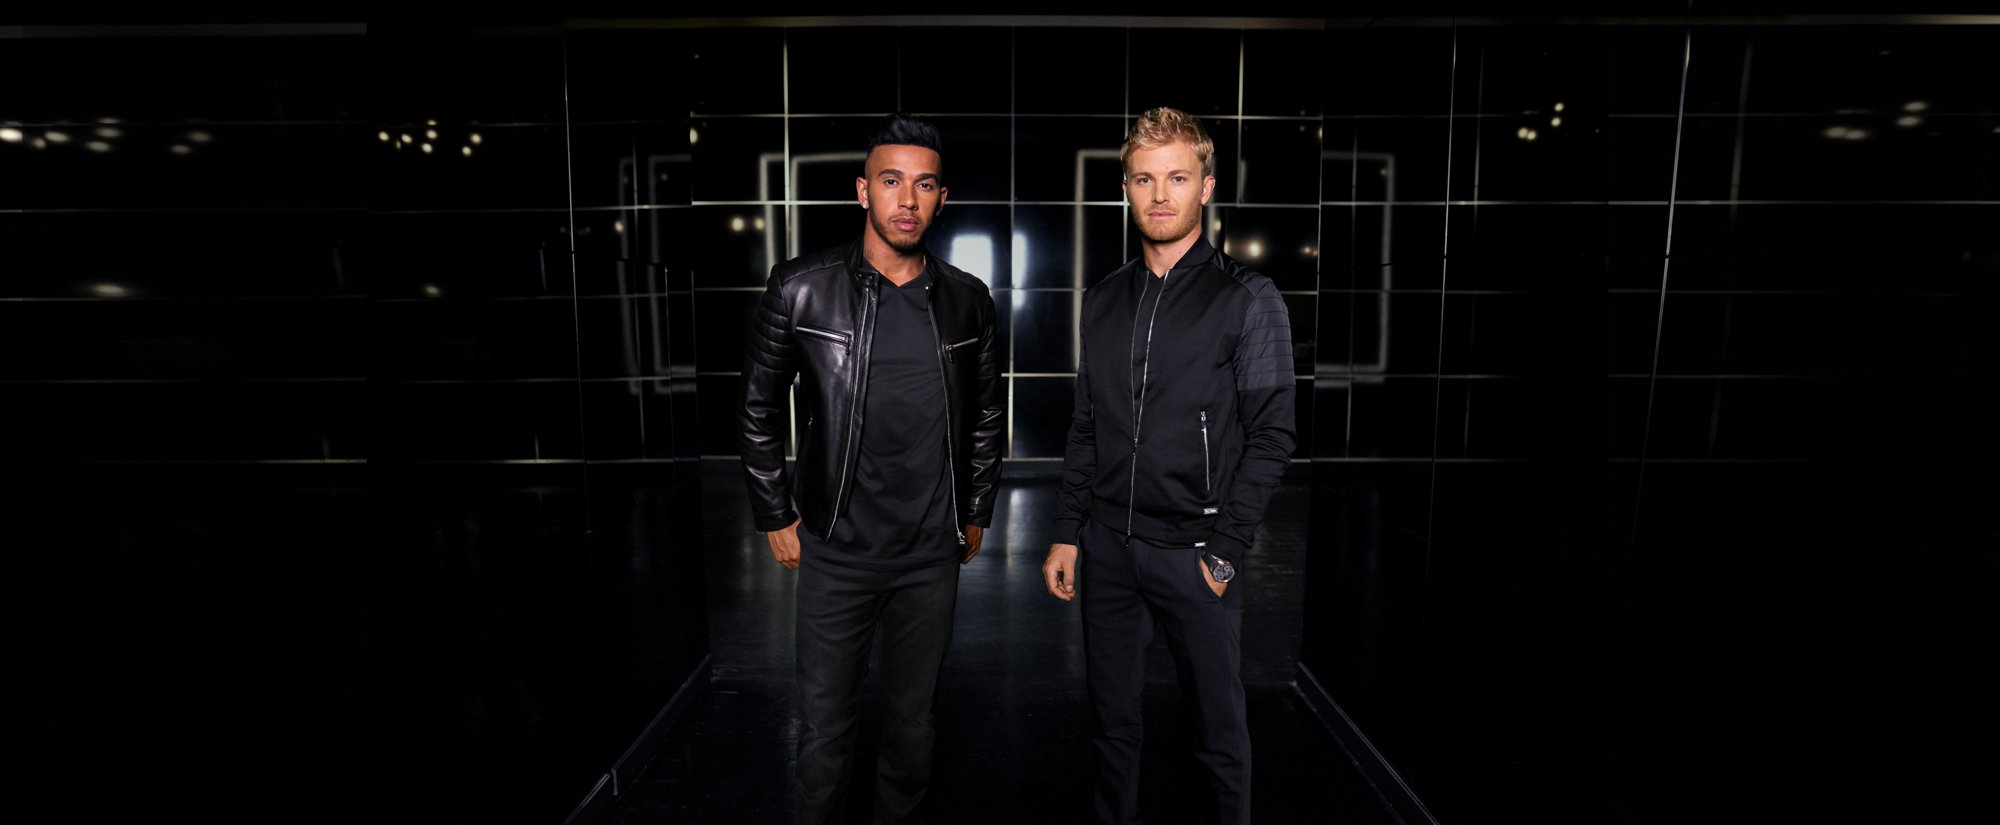 Nico Rosberg and Lewis Hamilton wearing BOSS for Mercedes-Benz